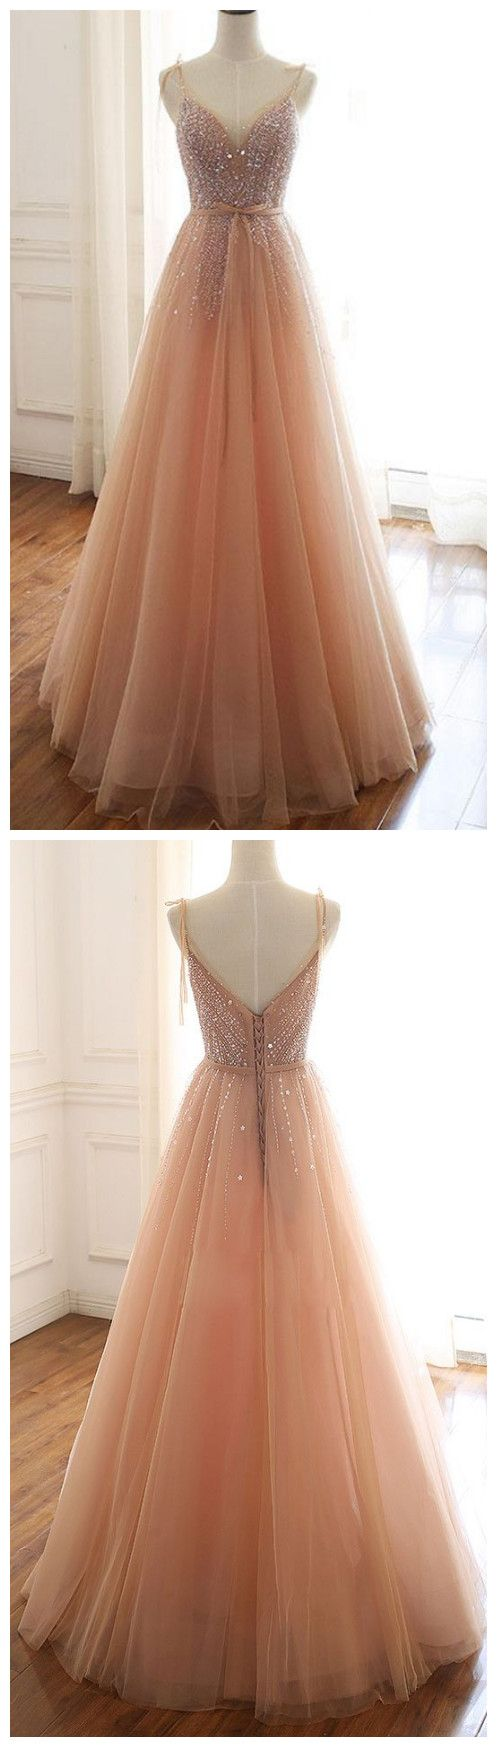 Tulle beads sequin long prom dress, evening dress